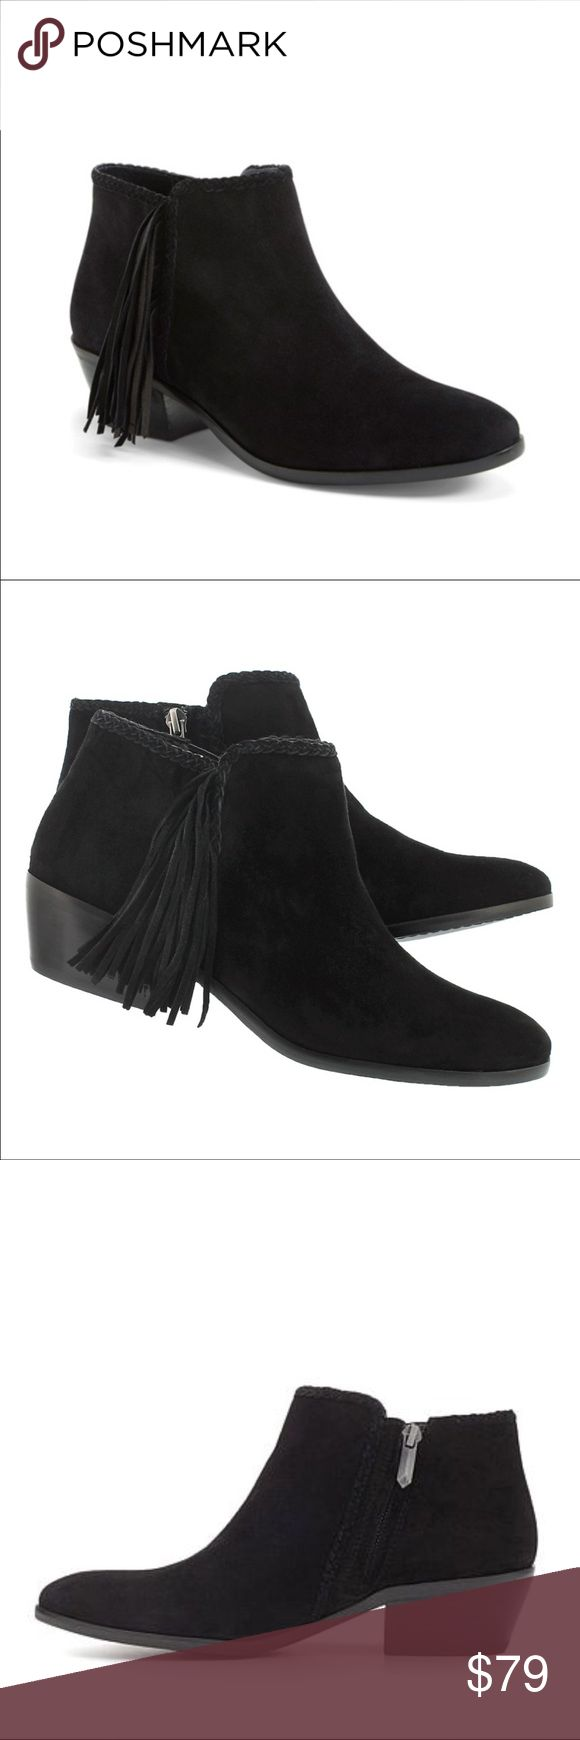 "Sam Edelman Paige Black Fringe Ankle Boho Booties Sam Edelman ""Paige"" Leather Suede Bootie Boots with Fringe Size 7.5. Black. Retail price is $170. Still sold on HSN.  Beautiful braiding and fun fringe combine to give a Bohemian update to the basic boot s"